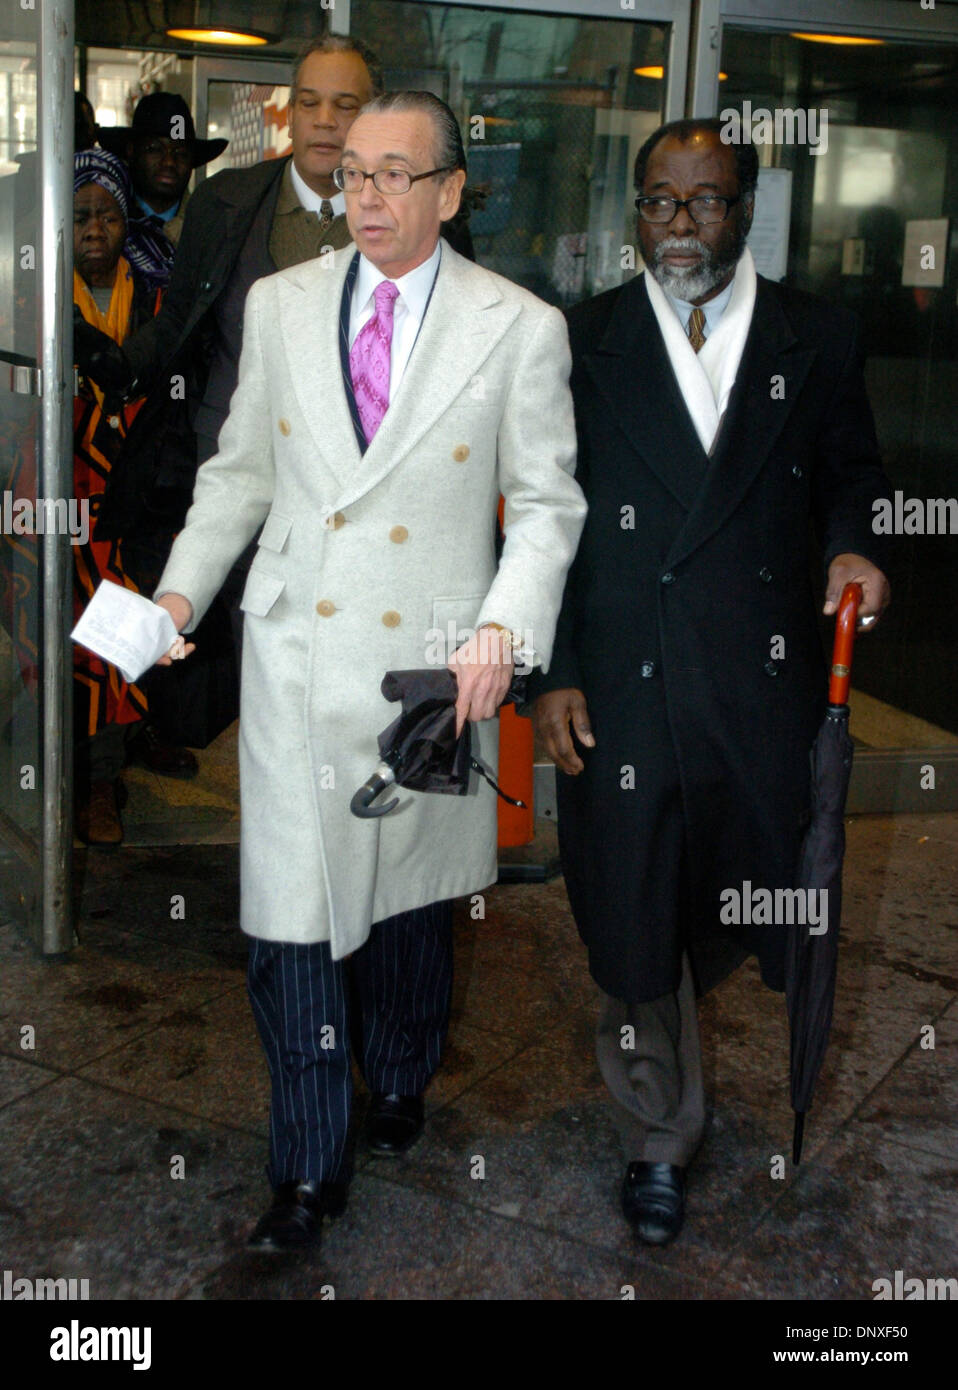 Probation Officer Police Stock Photos Country Boots Zongos Dec 09 2005 Manhattan New York Usa Attorney For Ousmane Zongo